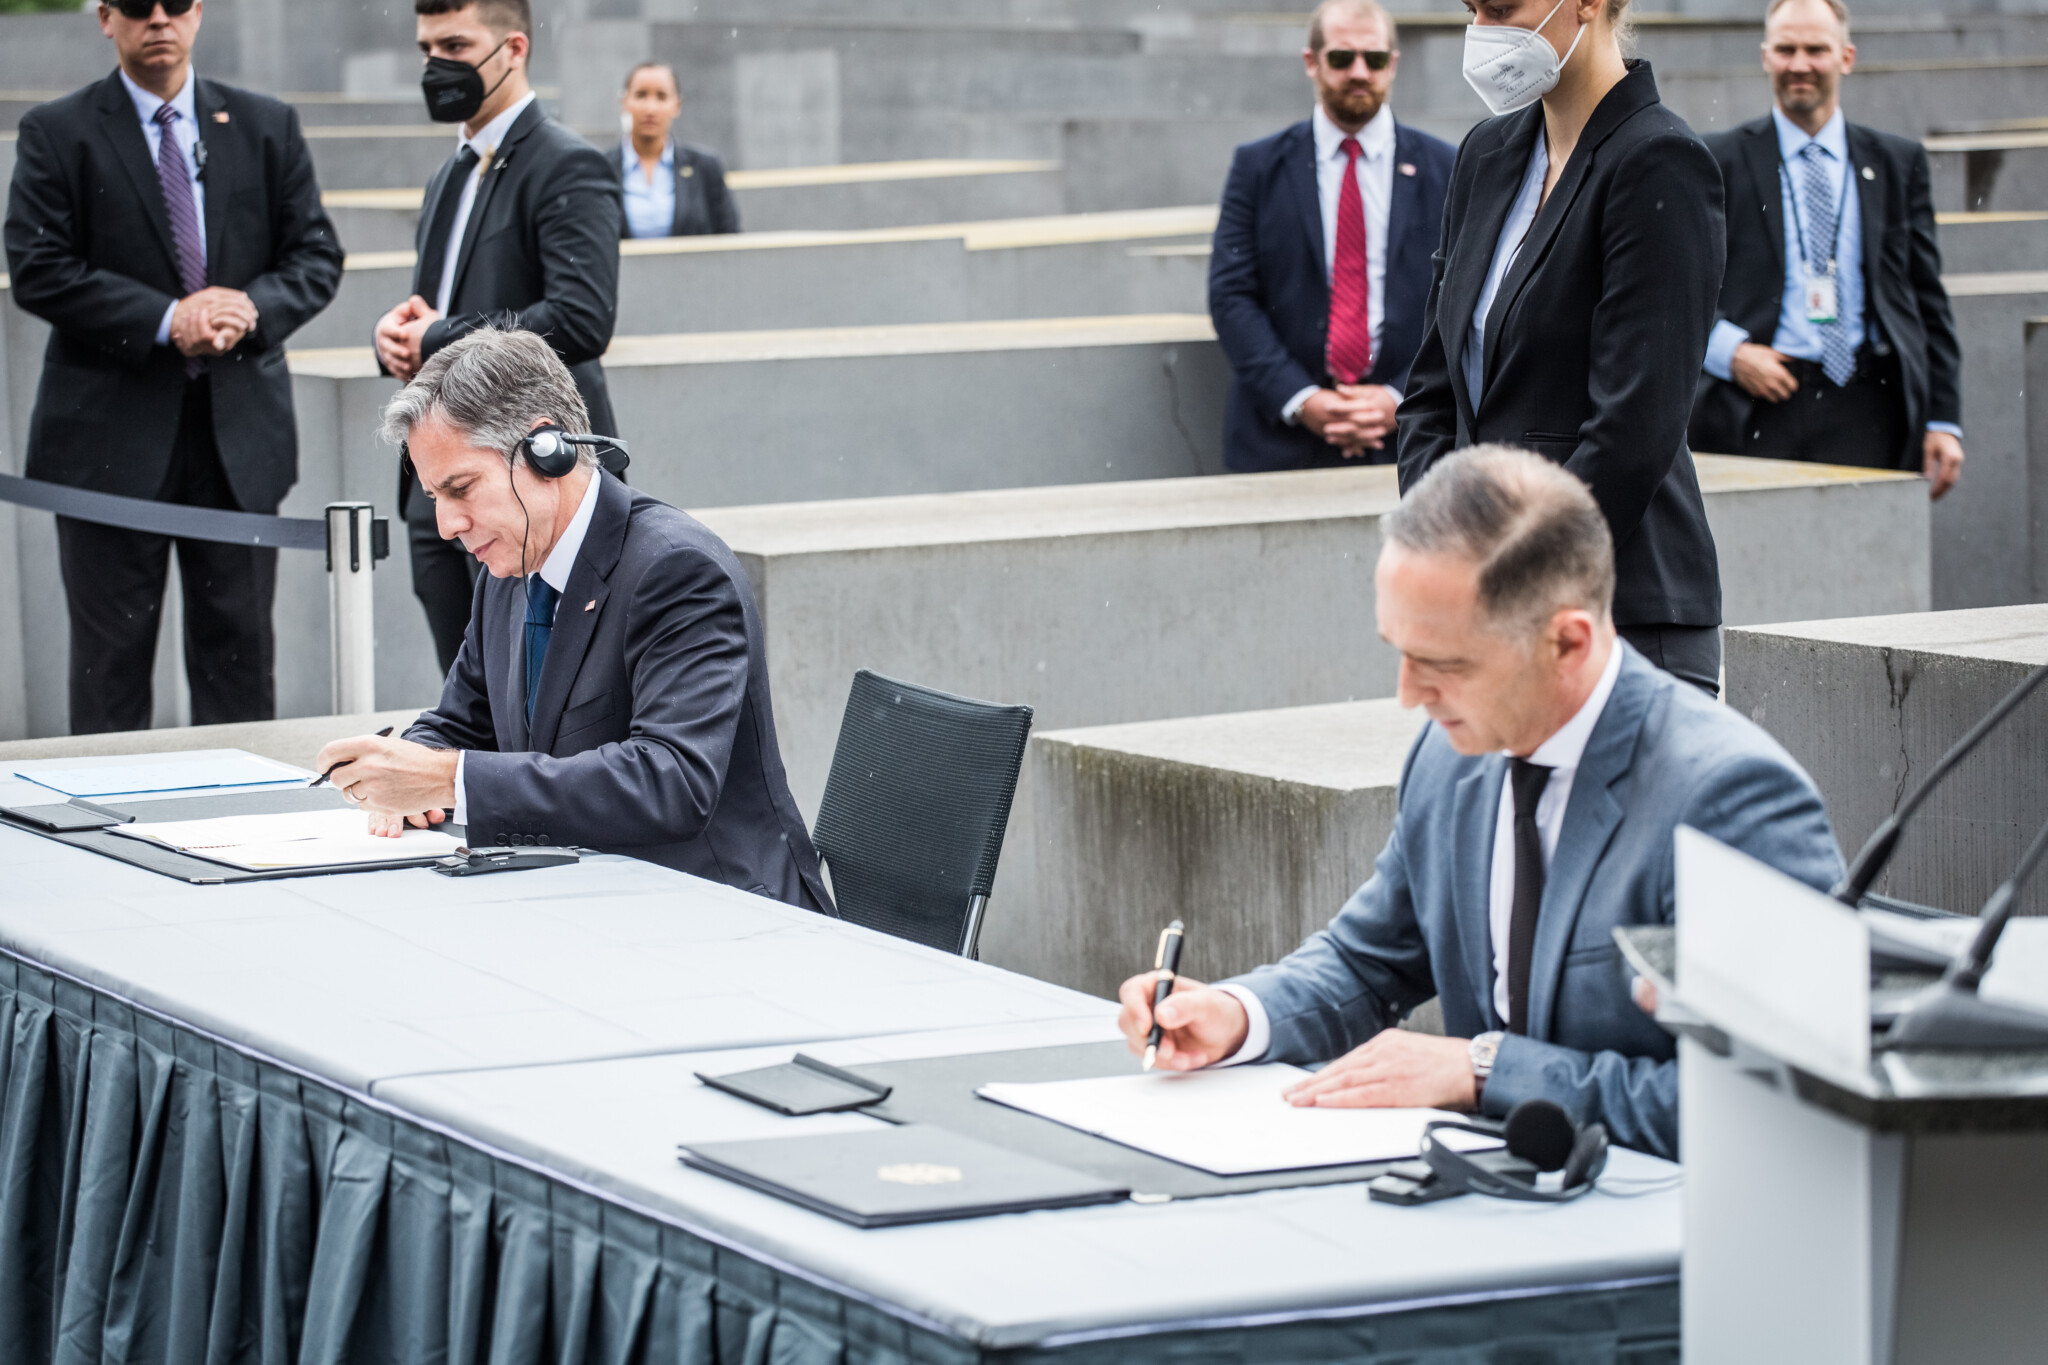 Agreement on closer future cooperation in the field of Holocaust remembrance between the USA and Germany